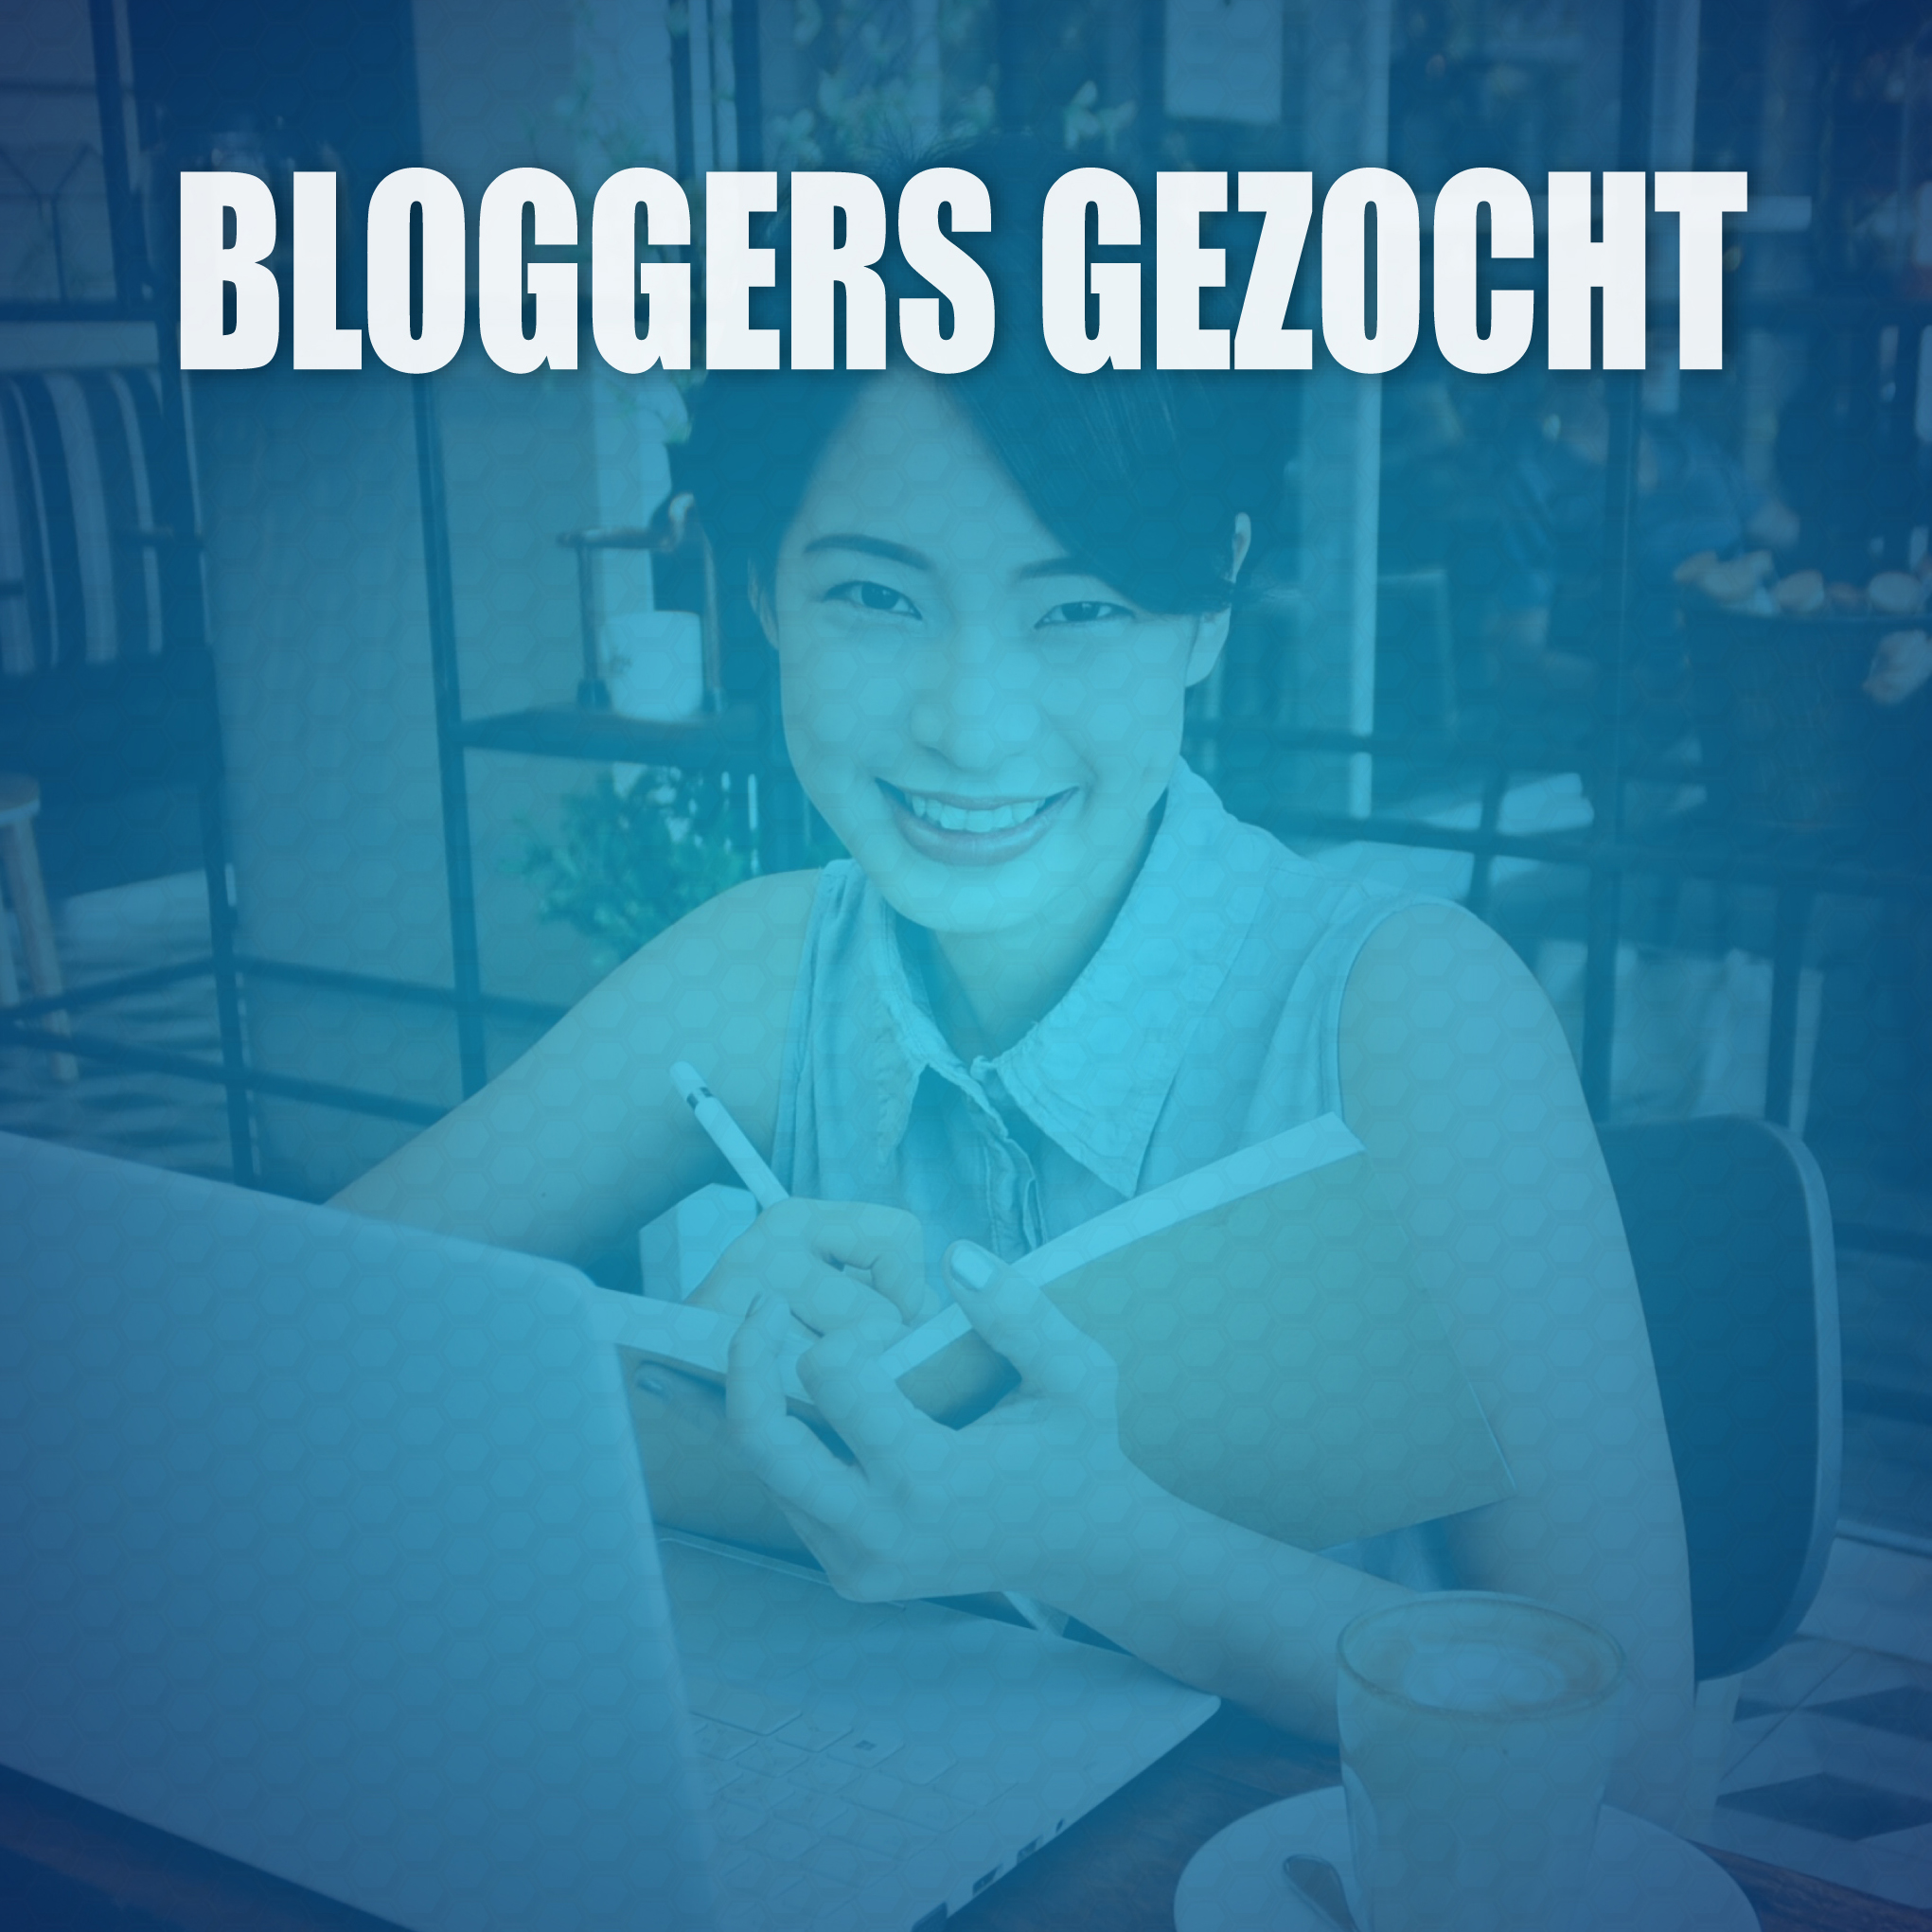 Bloggers gezocht - Designed by Chevanon